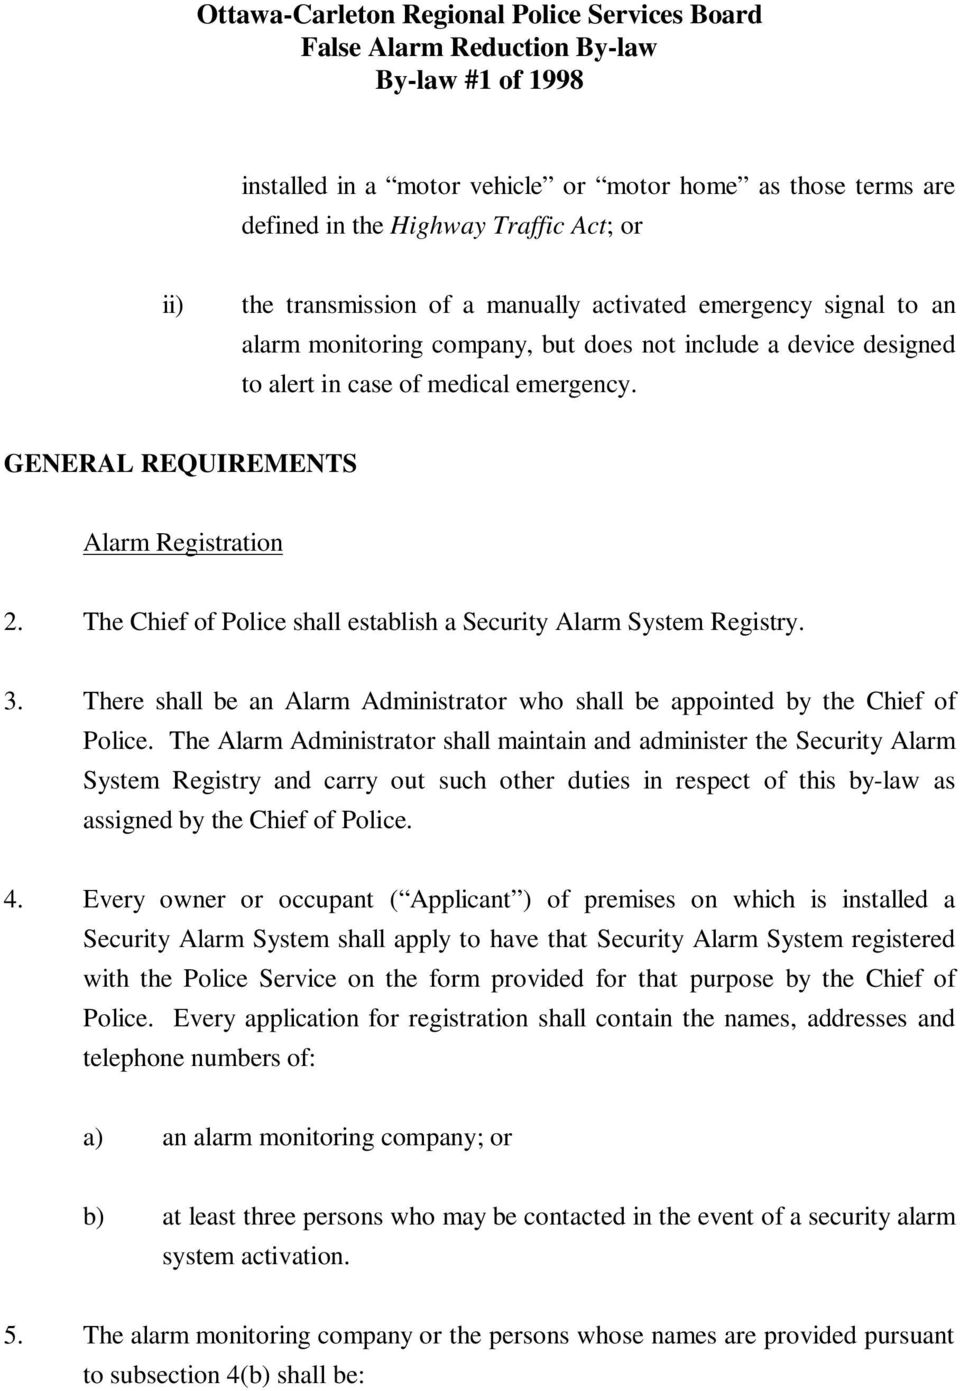 GENERAL REQUIREMENTS Alarm Registration 2. The Chief of Police shall establish a Security Alarm System Registry. 3. There shall be an Alarm Administrator who shall be appointed by the Chief of Police.